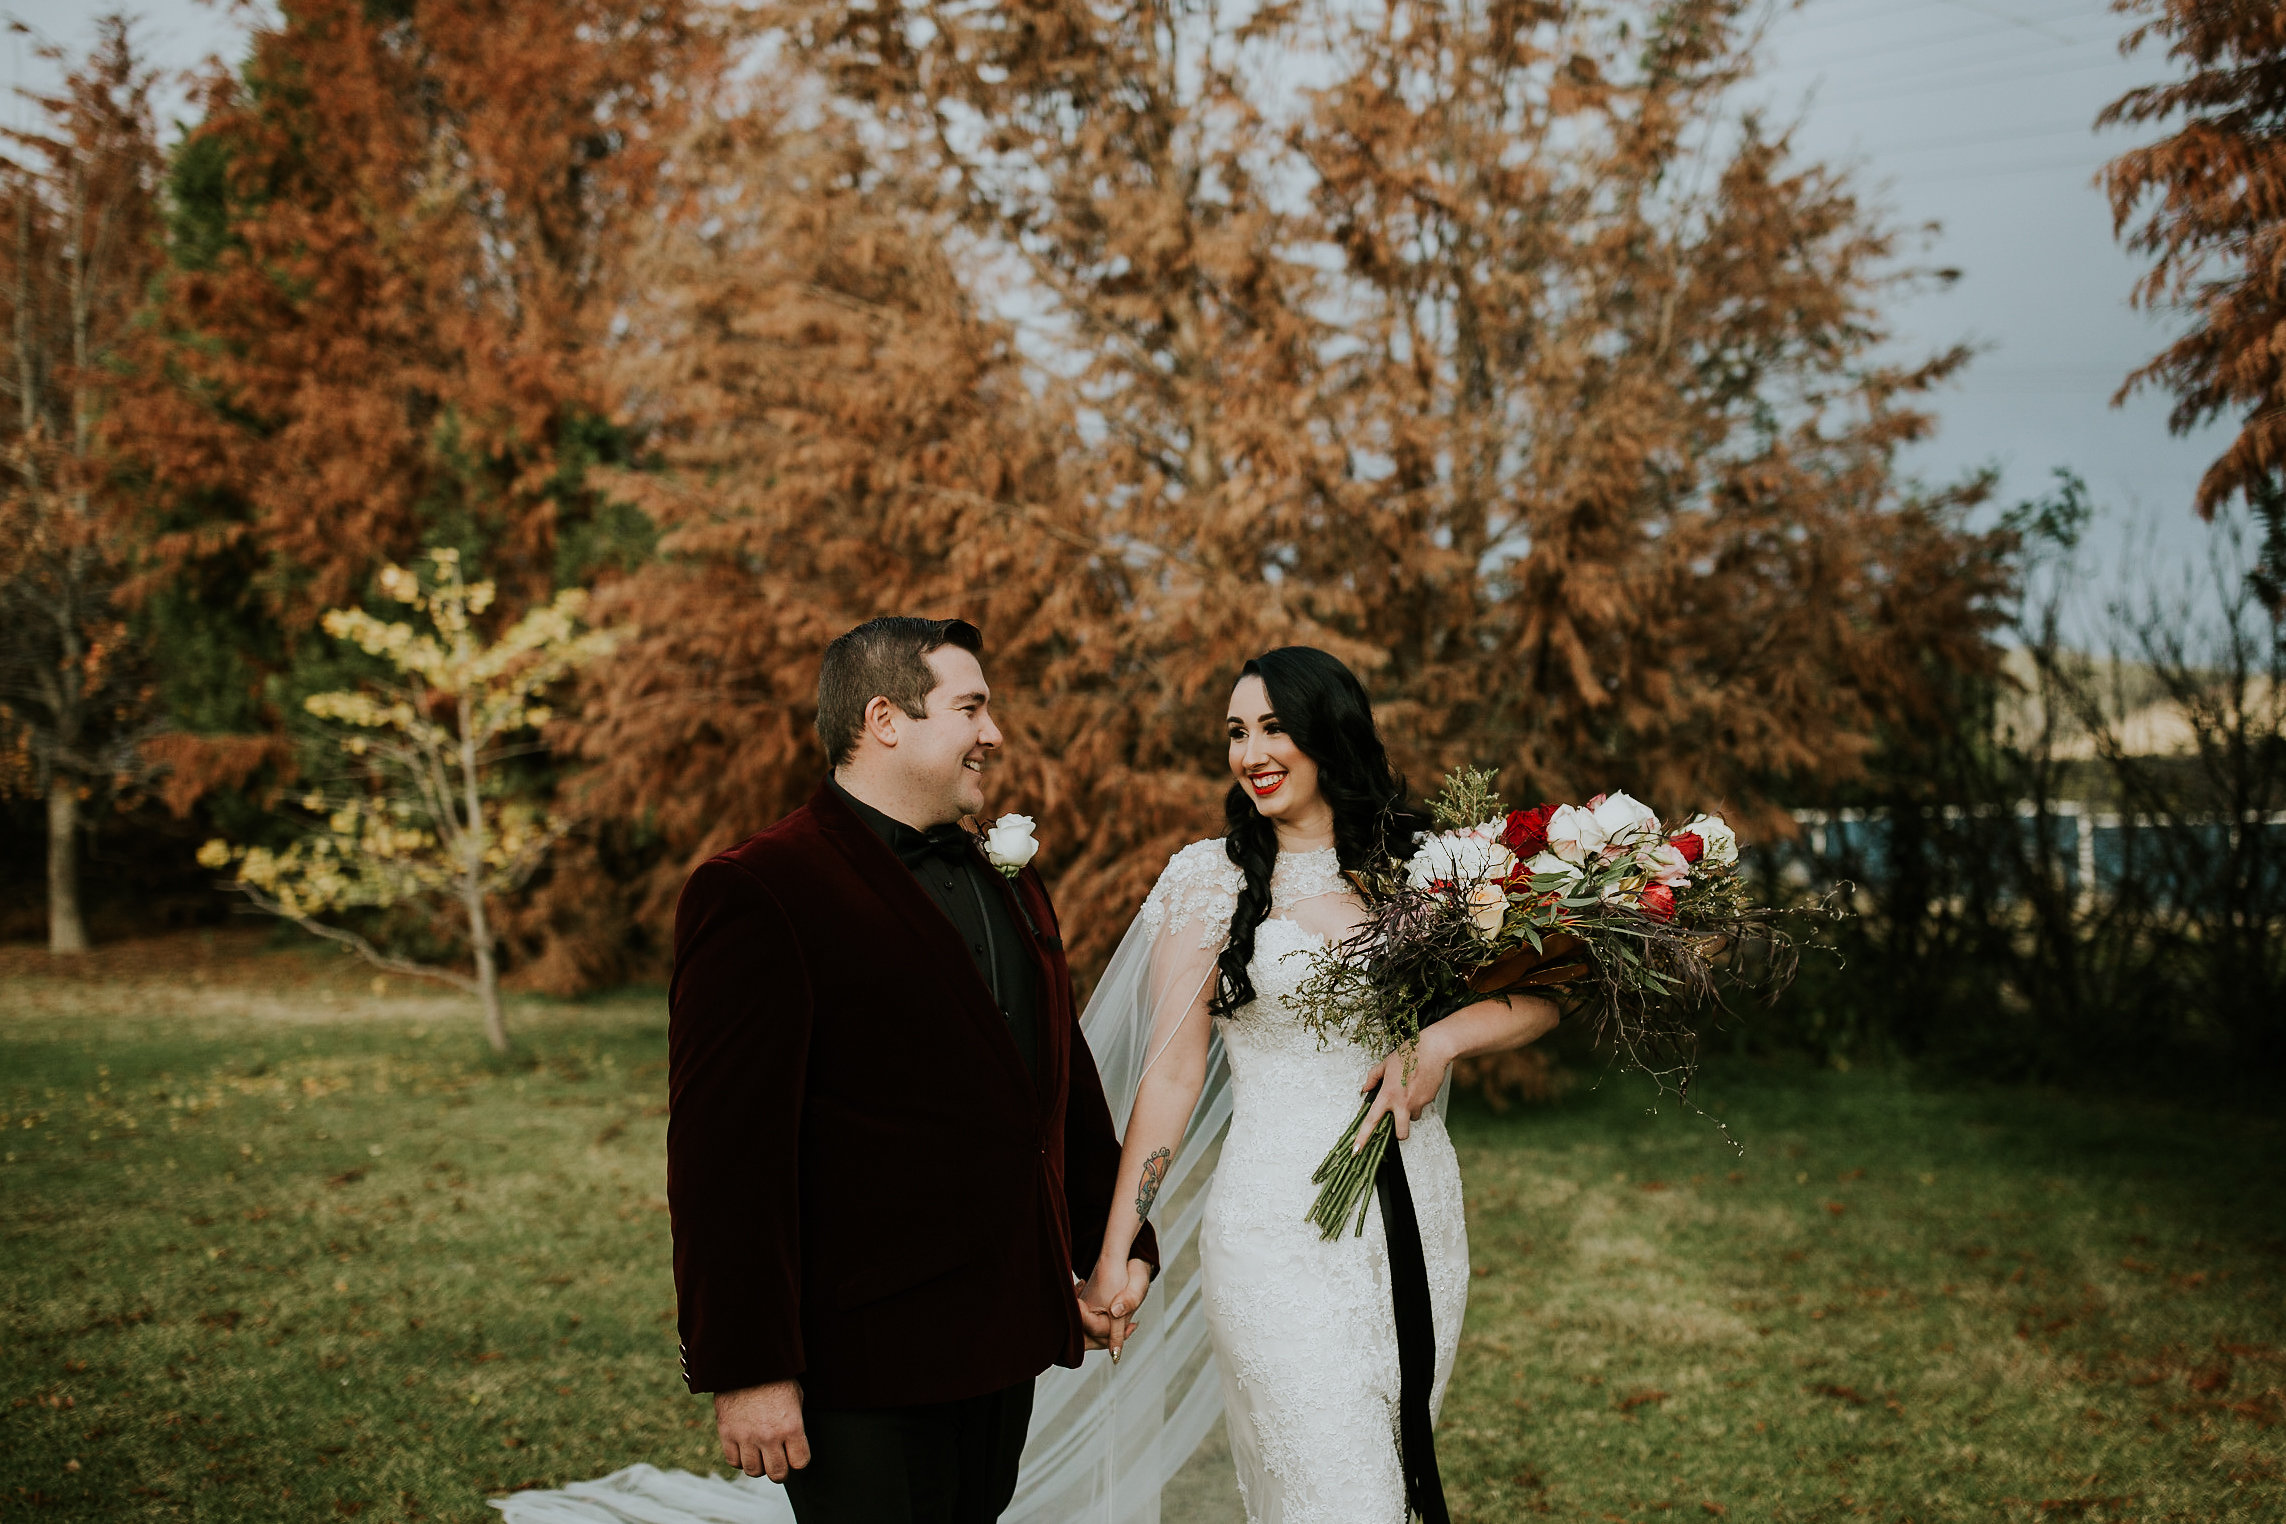 Wedding Packages - Start from $3150